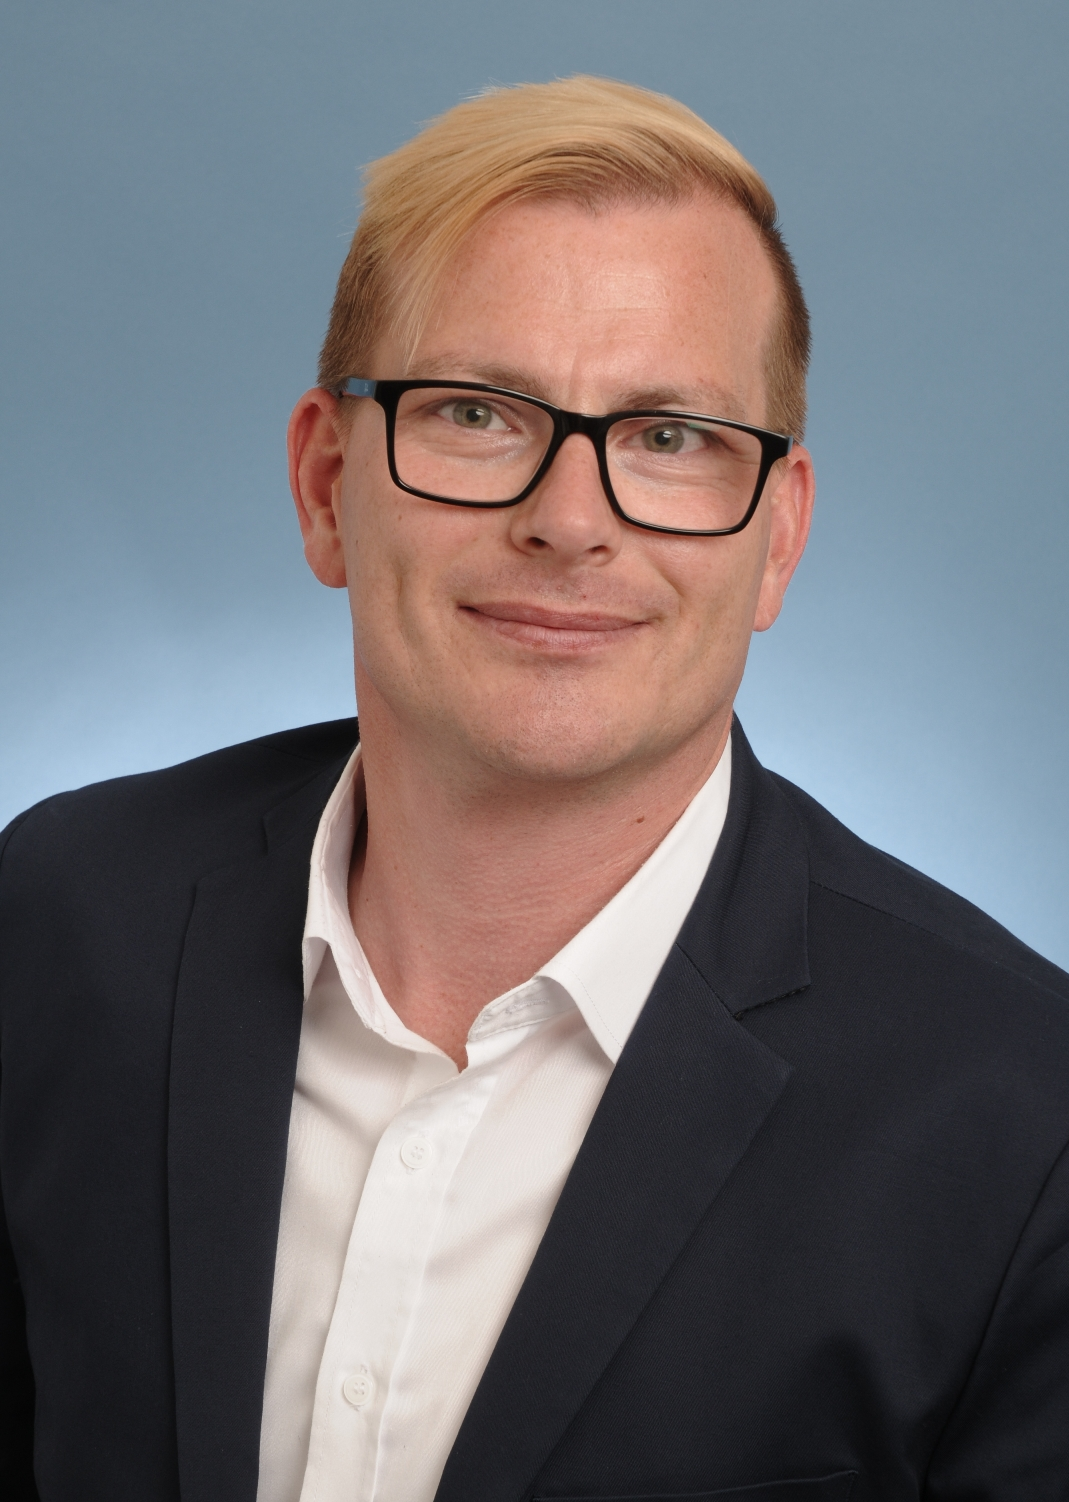 The new cuxhaven branch manager of NPorts: Knut Kokkelink (Copyright: NPorts)